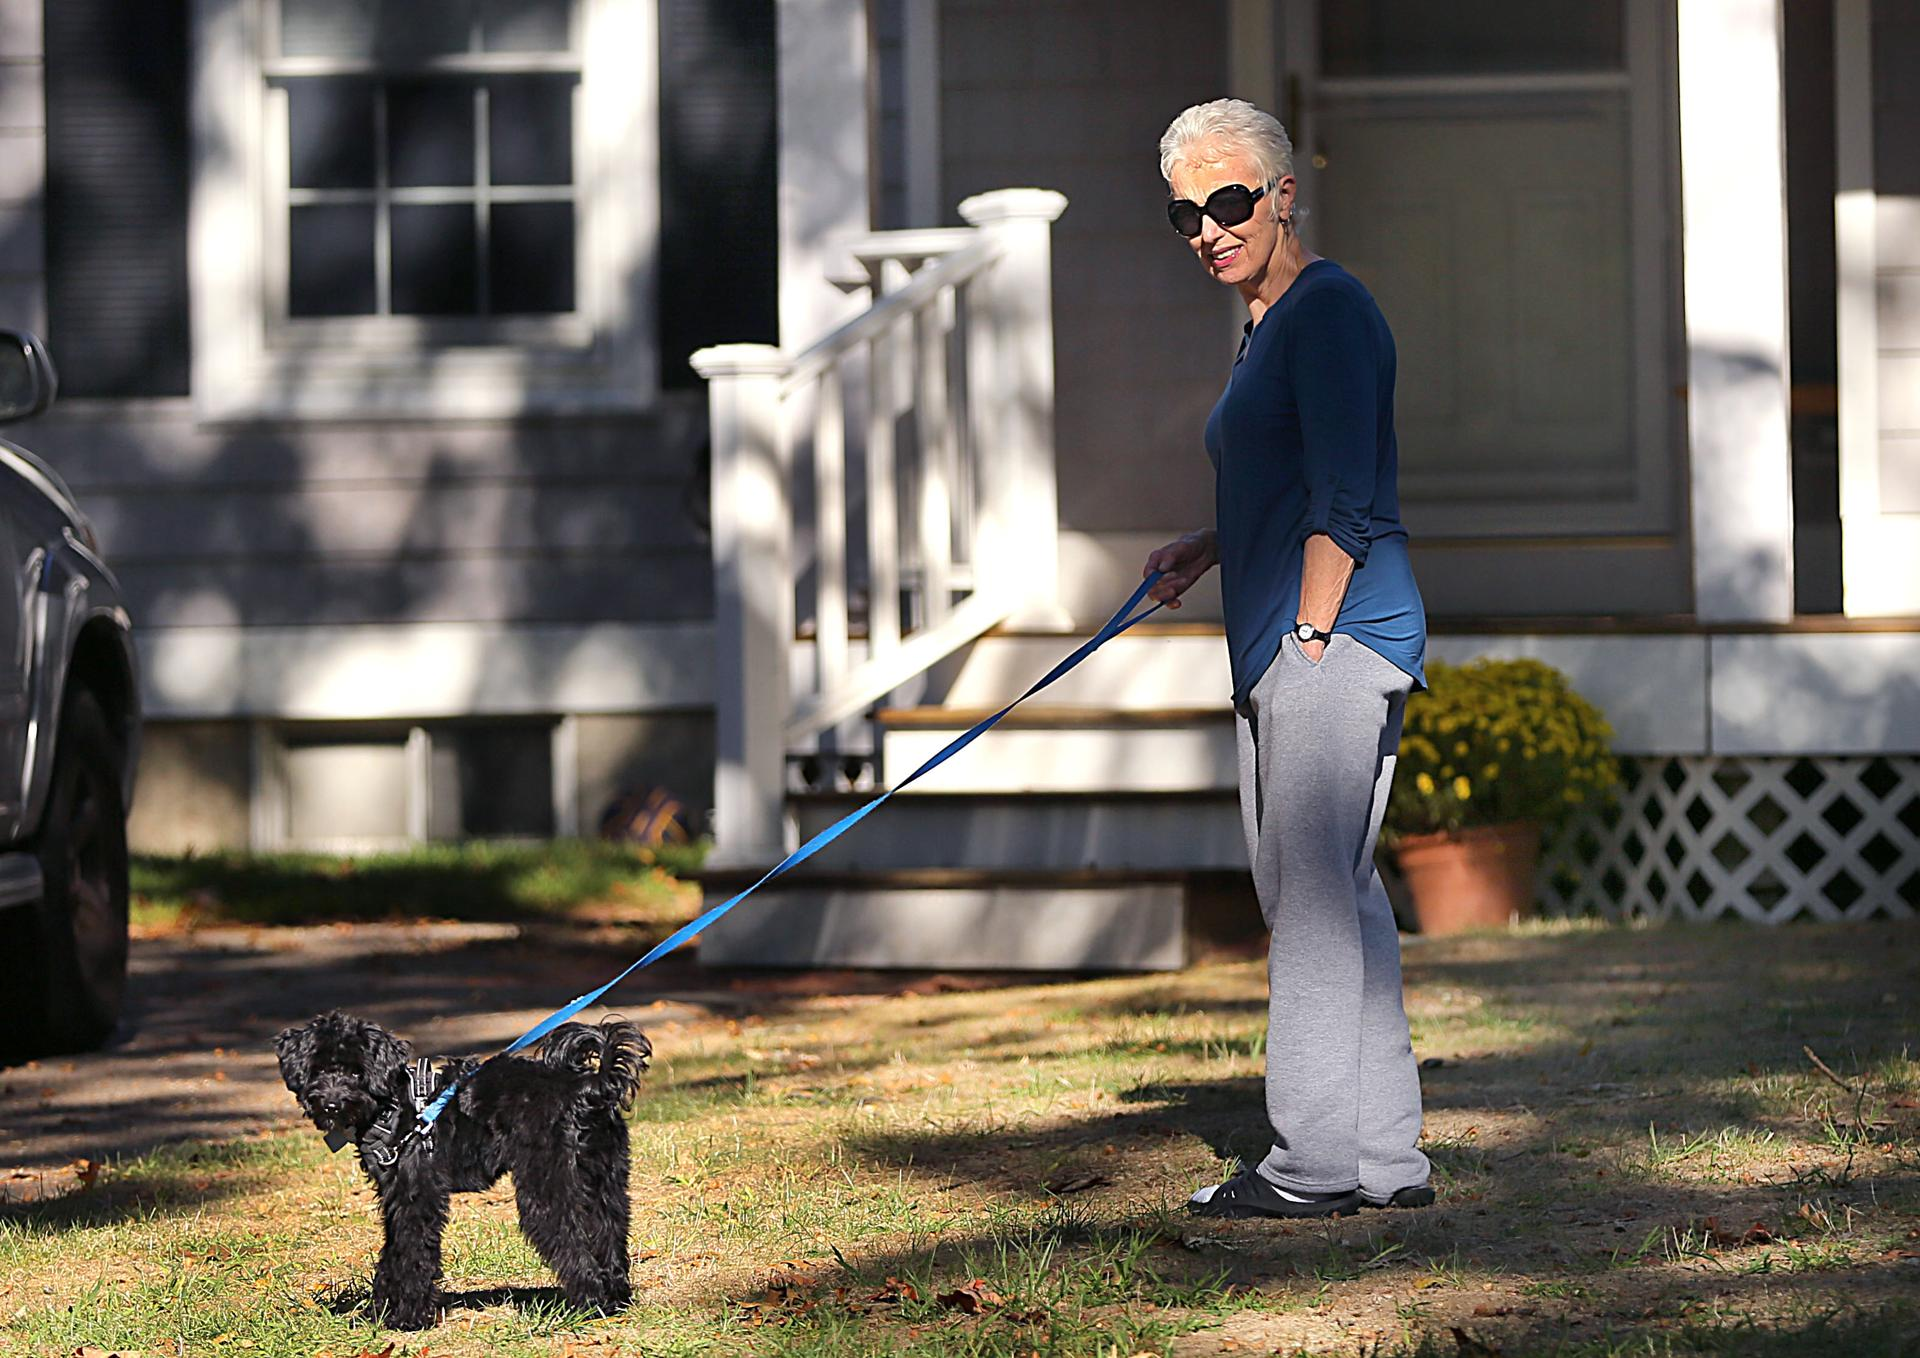 Hingham 09/25/19-FOR PUBLICATION ONLY WITH SHELLEY MURPHY STORY The former longtime girlfriend of mobster Whitey Bulger, Catherine Greig walks her dog on the front lawn of the home she is staying at in Hingham which is the residence of one of Billy Bulger's daughters. Photo by John Tlumacki/Globe Staff(metro)